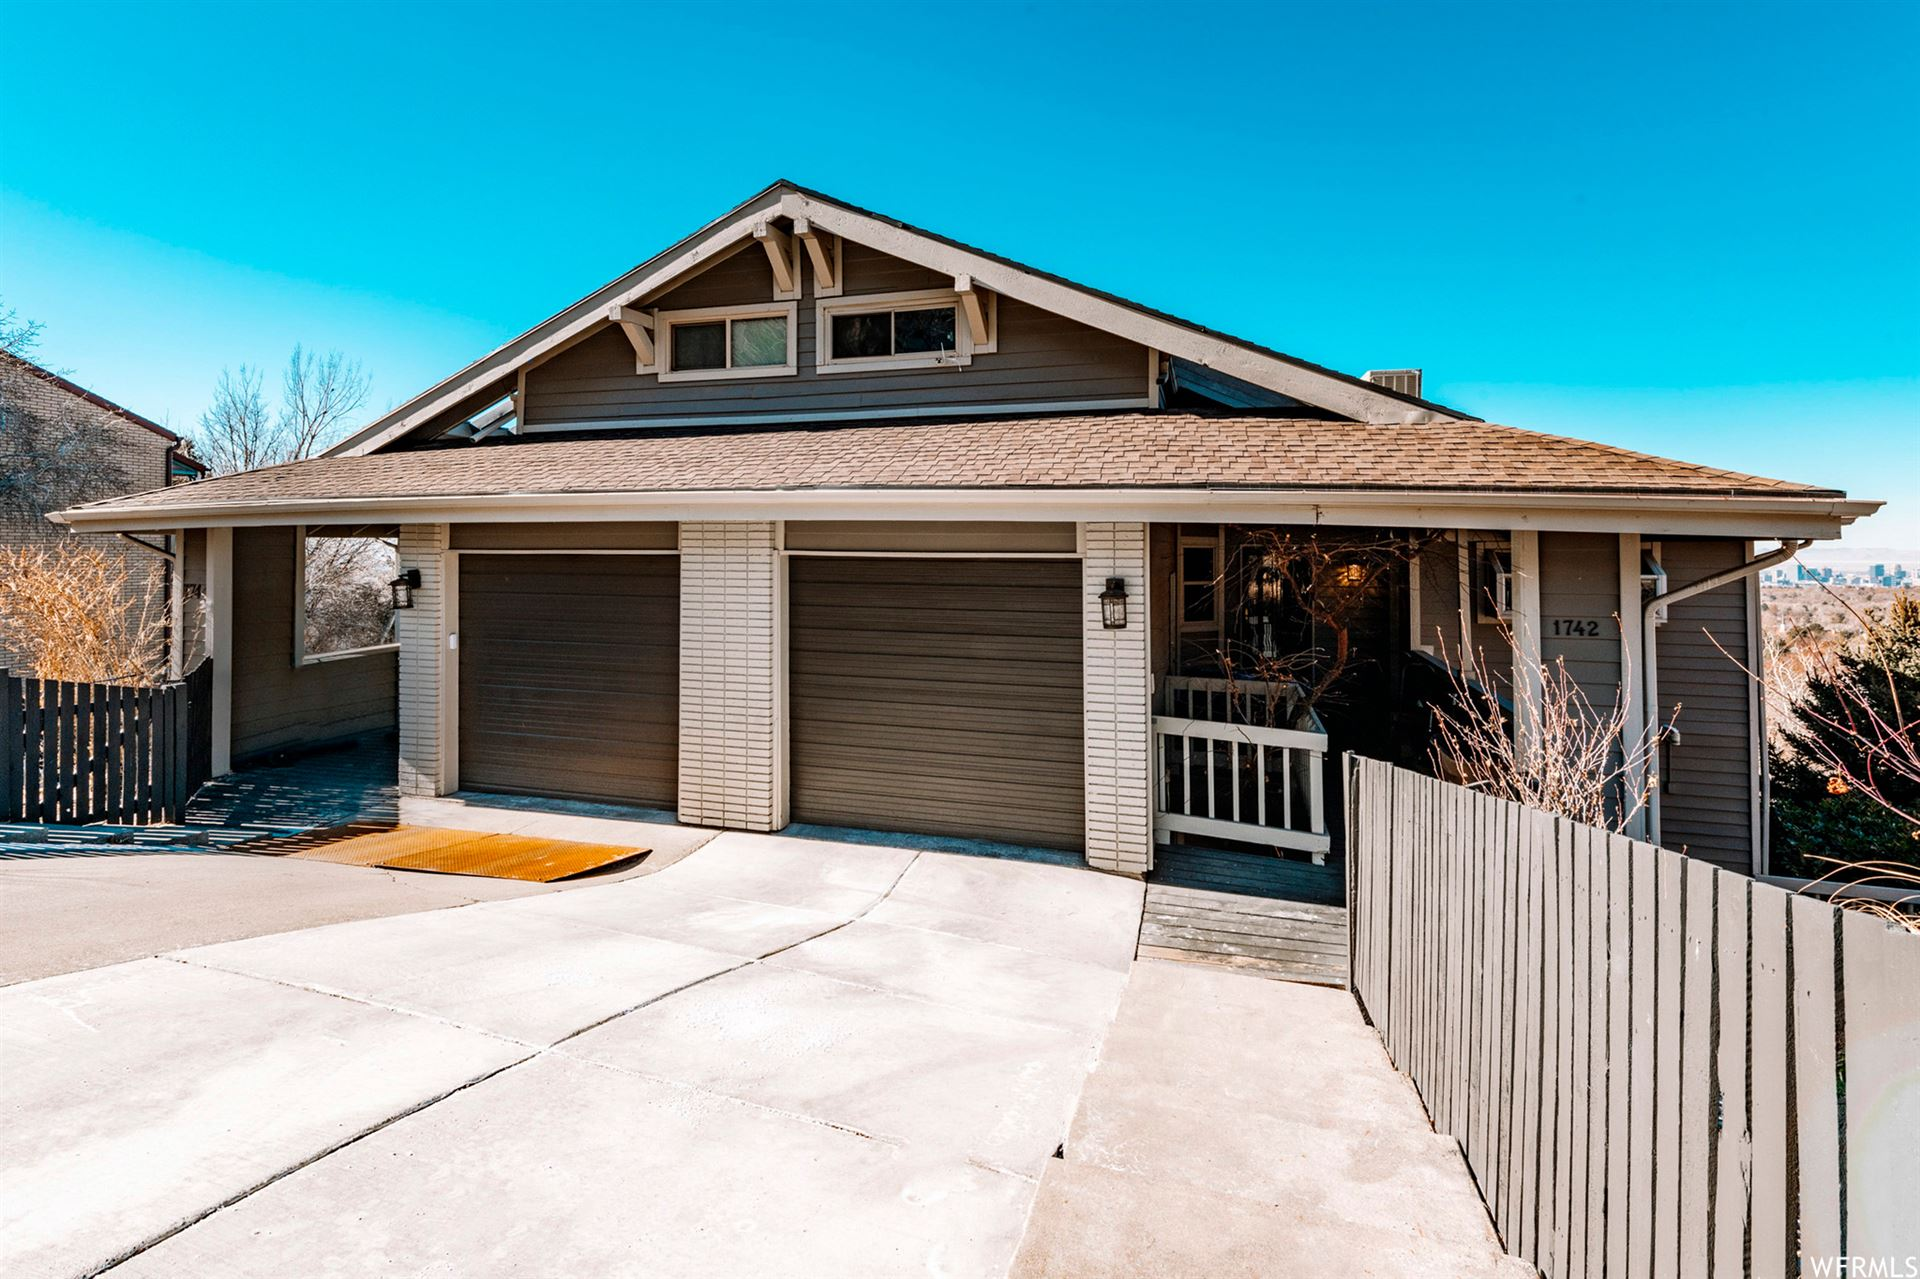 Photo of 1742 S MOHAWK E CIR, Salt Lake City, UT 84108 (MLS # 1721185)